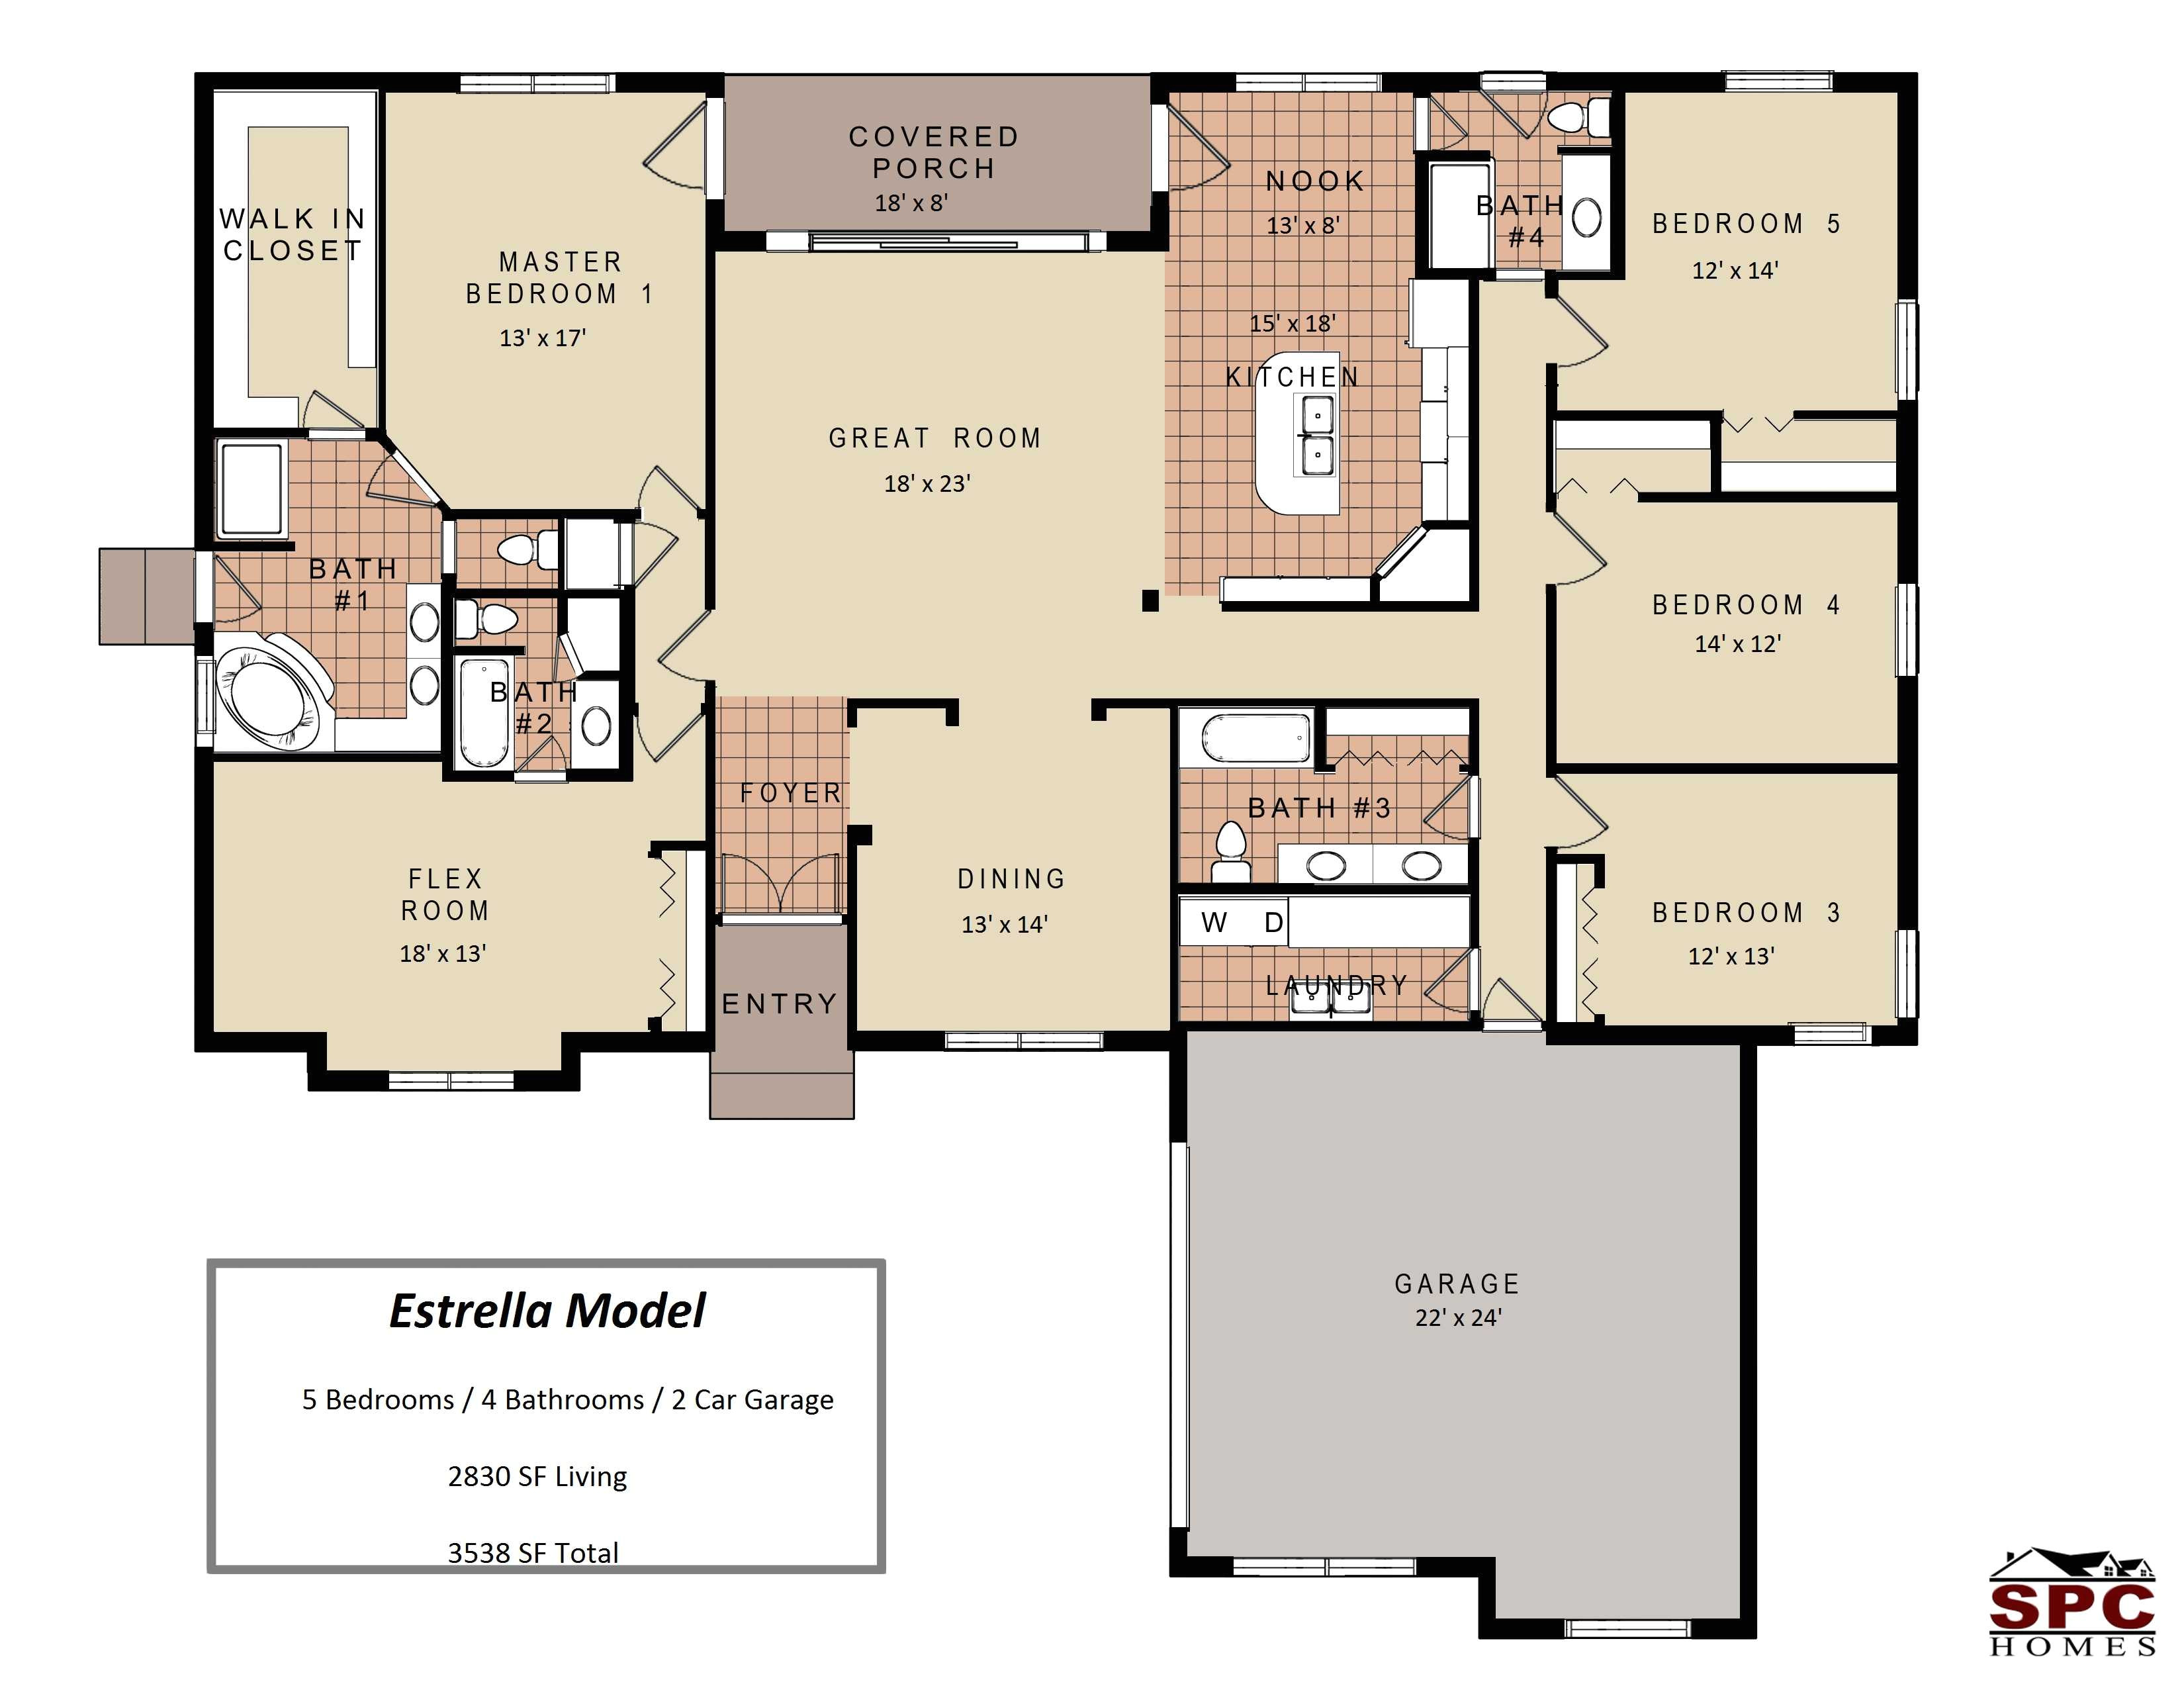 4 bedroom single story floor plans images with beautiful house 2018